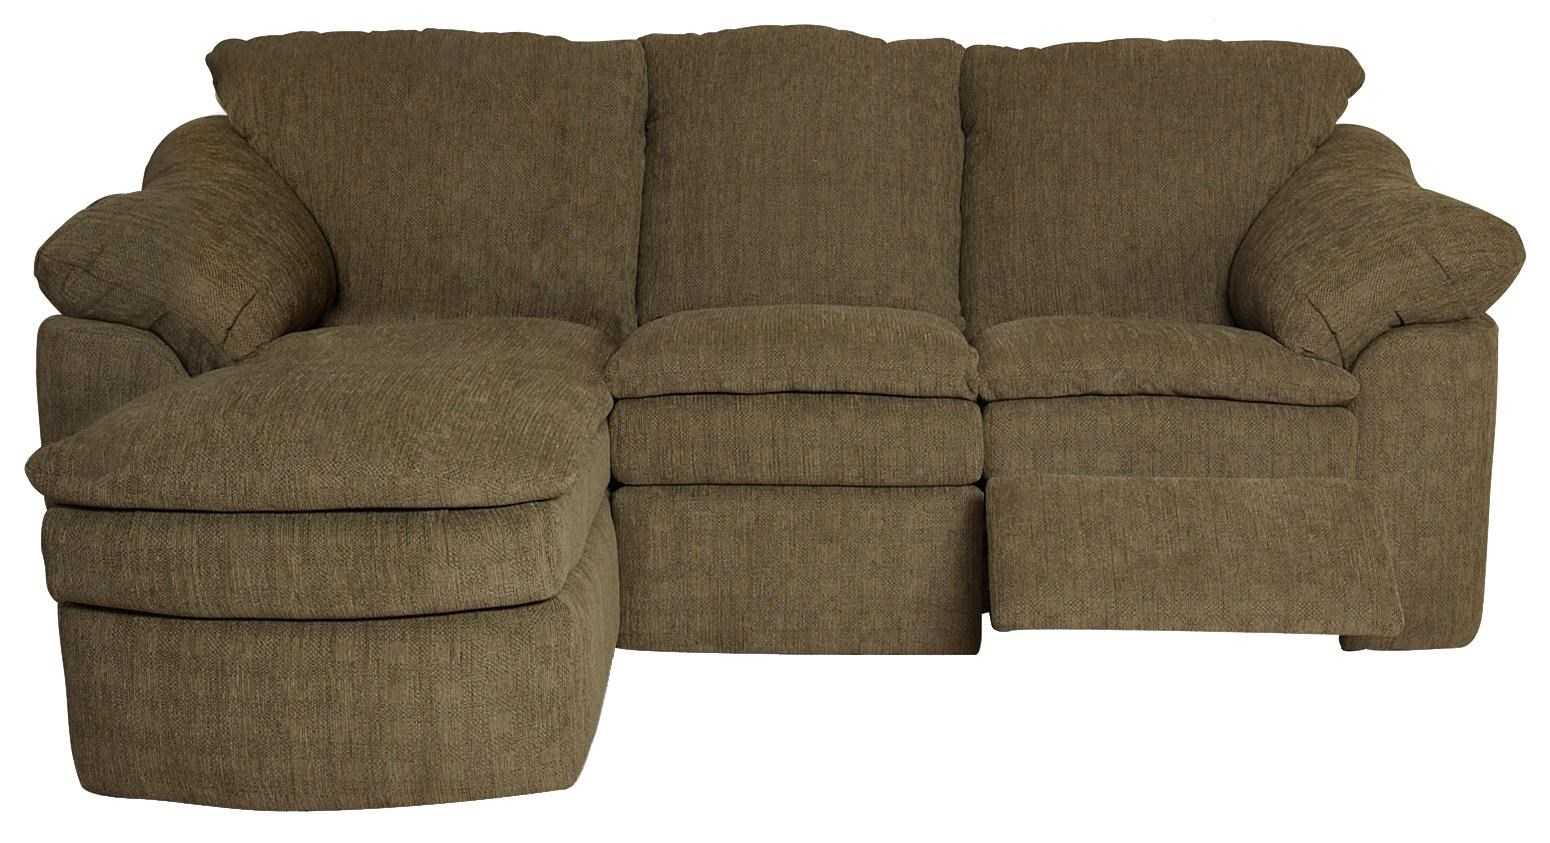 England Seneca Falls Small And Compact Three Piece Reclining Sectional Sofa